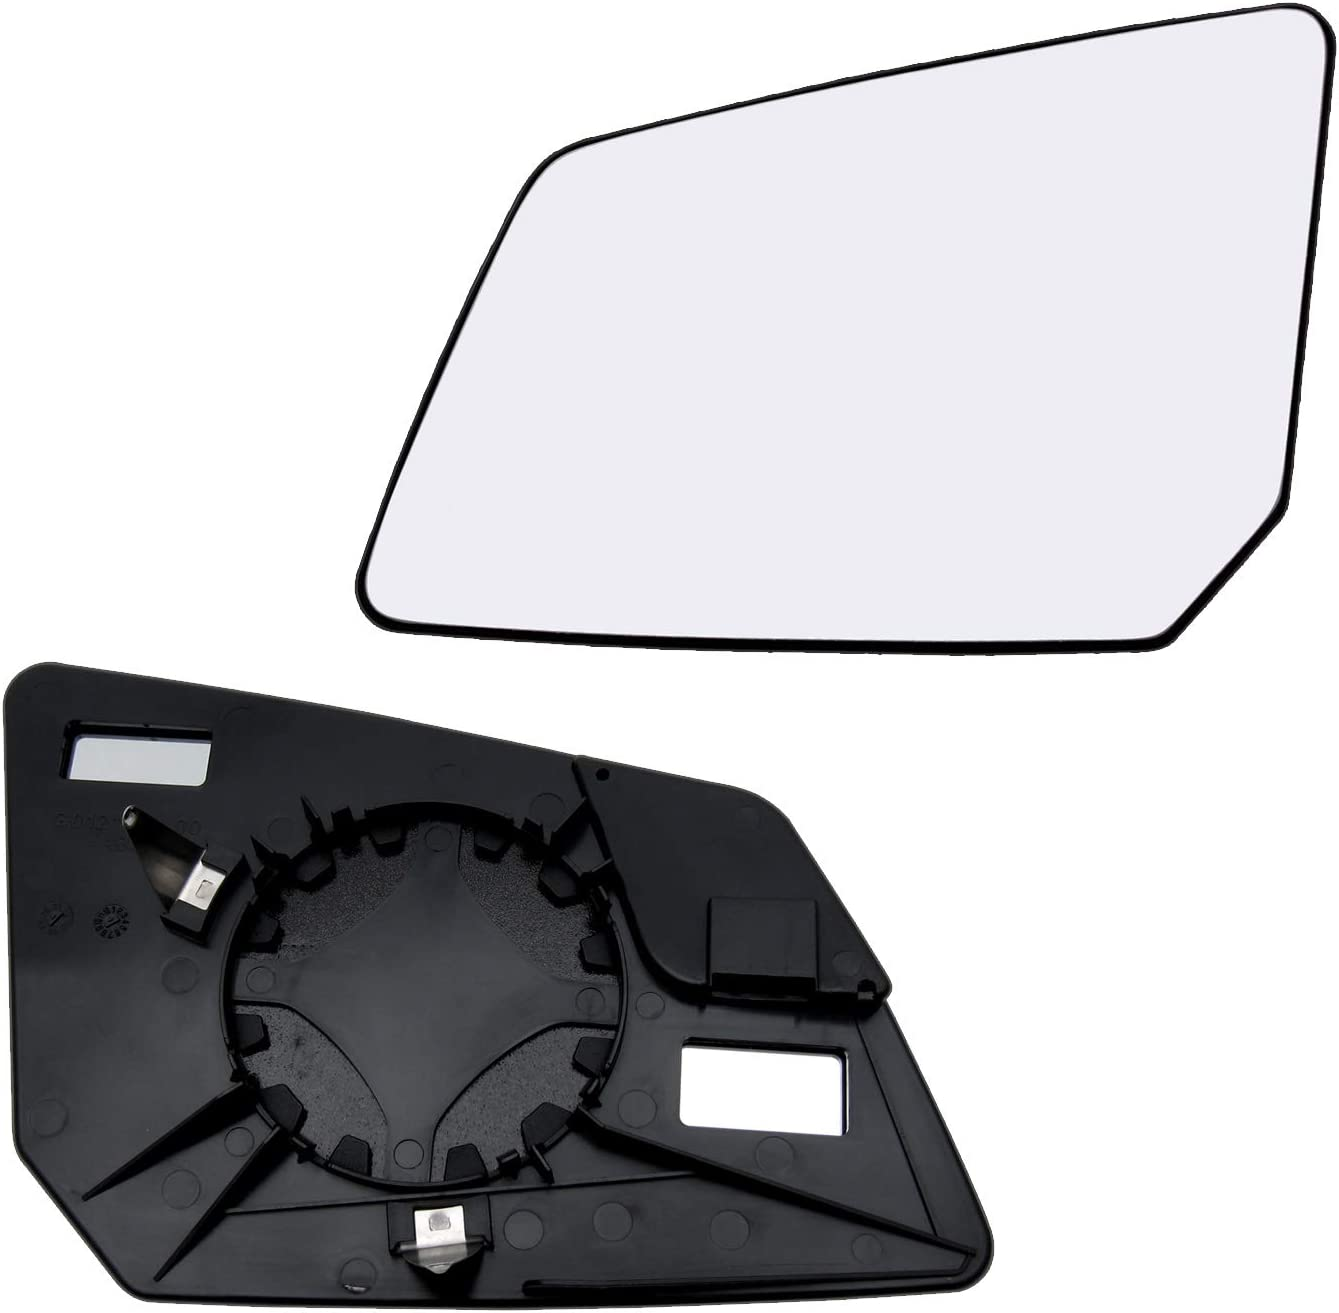 Limited Saturn Outlook Sold By Rugged TUFF New Replacement Driver Side Mirror Glass W Backing Compatible With Chevrolet Traverse GMC Acadia